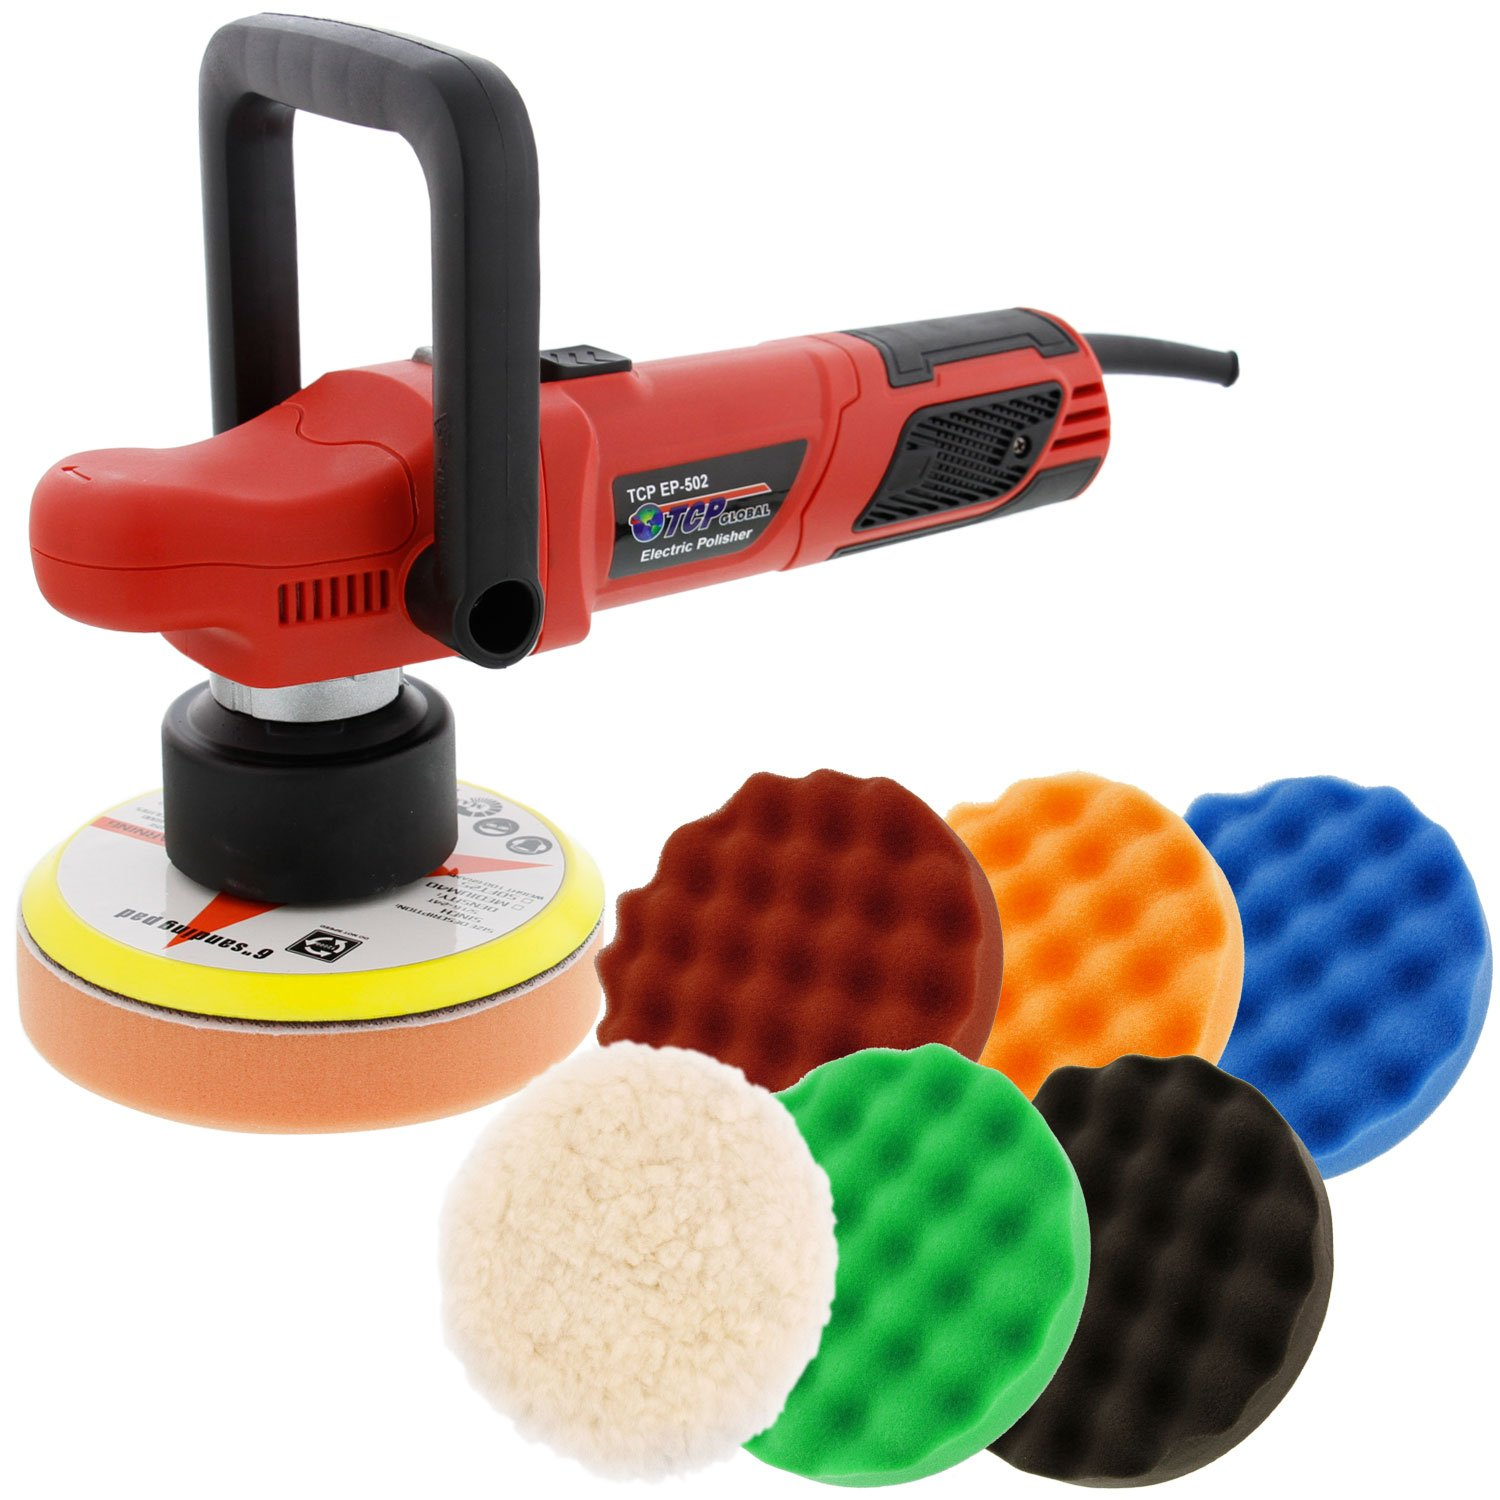 TCP Global Model EP-502-6'' Variable Speed Random Orbit Dual-Action Polisher with a 6 Pad (Waffle Foam & Wool) Professional Buffing and Polishing Kit - Buff, Polish & Detail Car Auto Paint